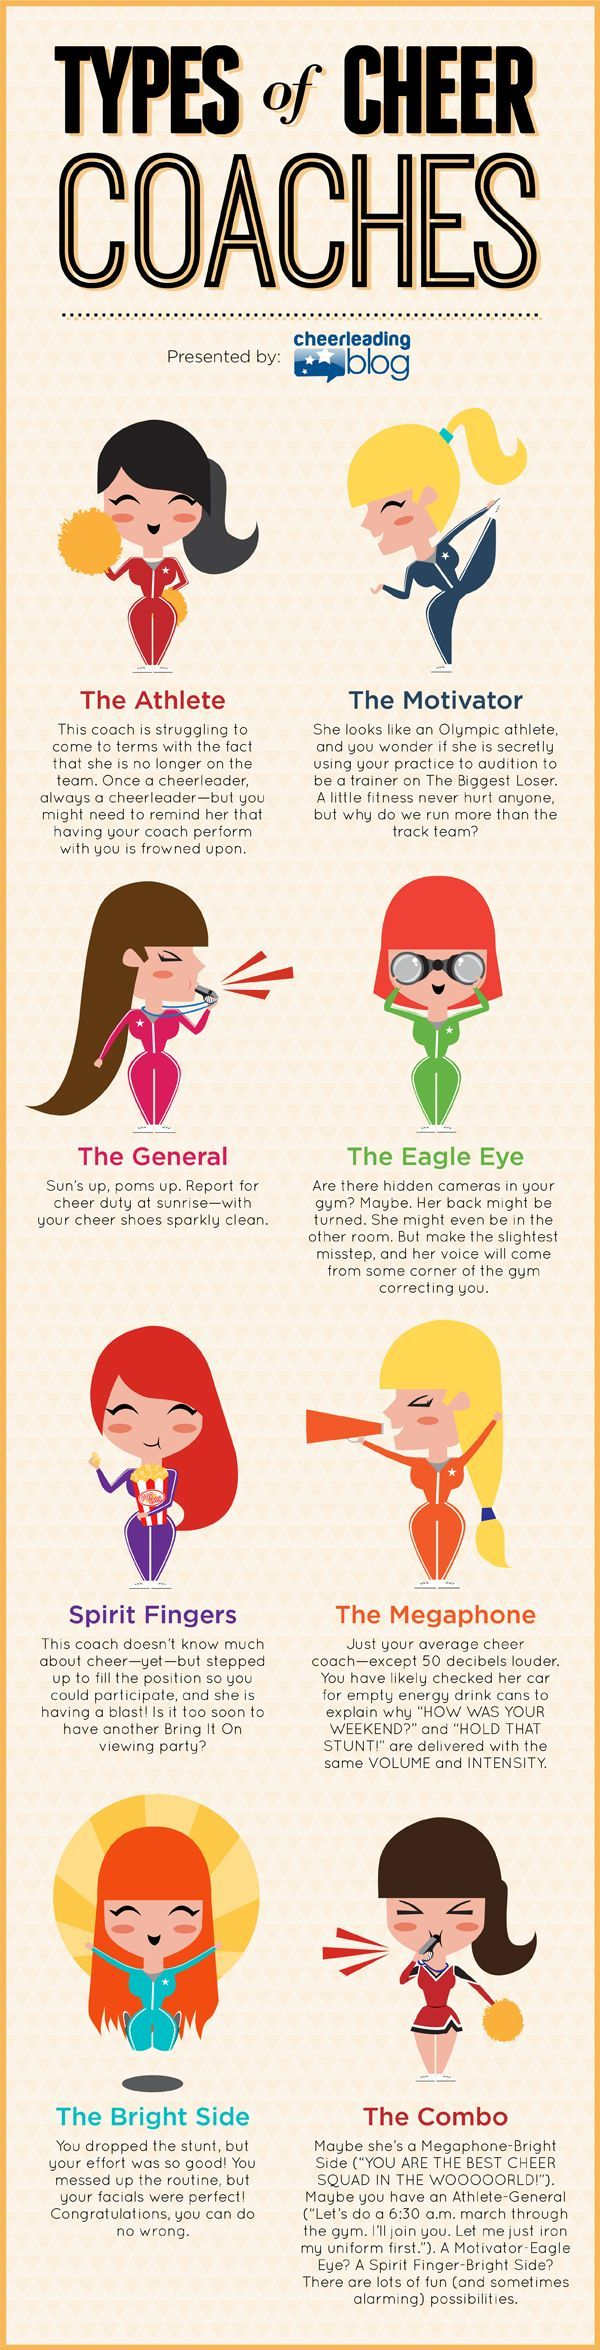 Types of Cheer Coaches - It would be cute to have the cheerleaders pick the type of coach they are looking for (like a quiz, pick 1, 2, 3) so that way the coach can make sure she is matching what her team wants #soccerinfographic